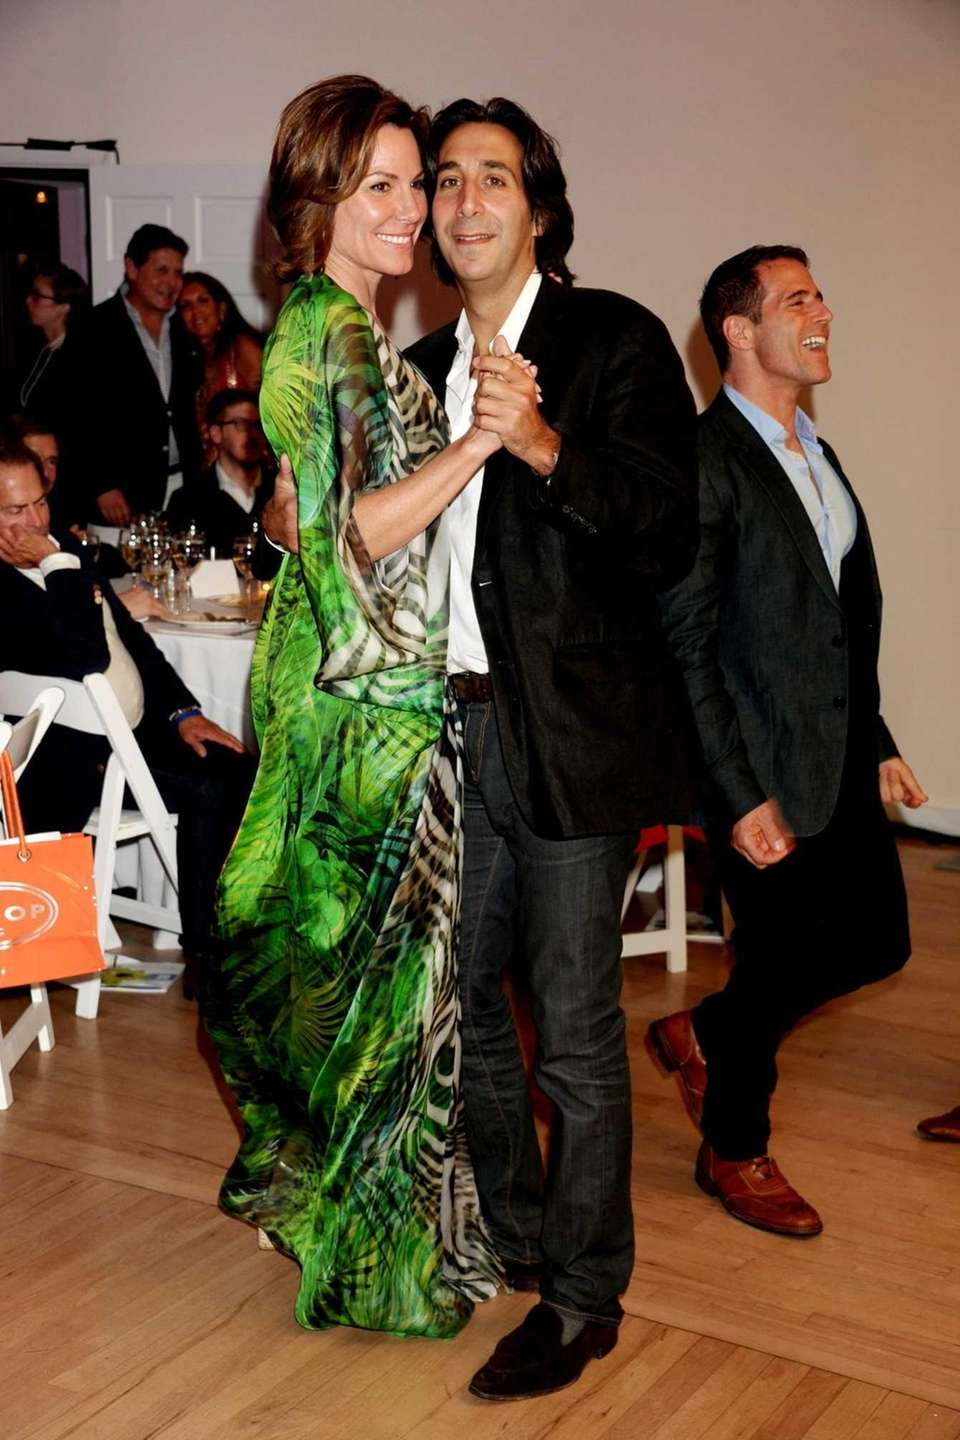 Countess Luann de Lesseps dances with her boyfriend,